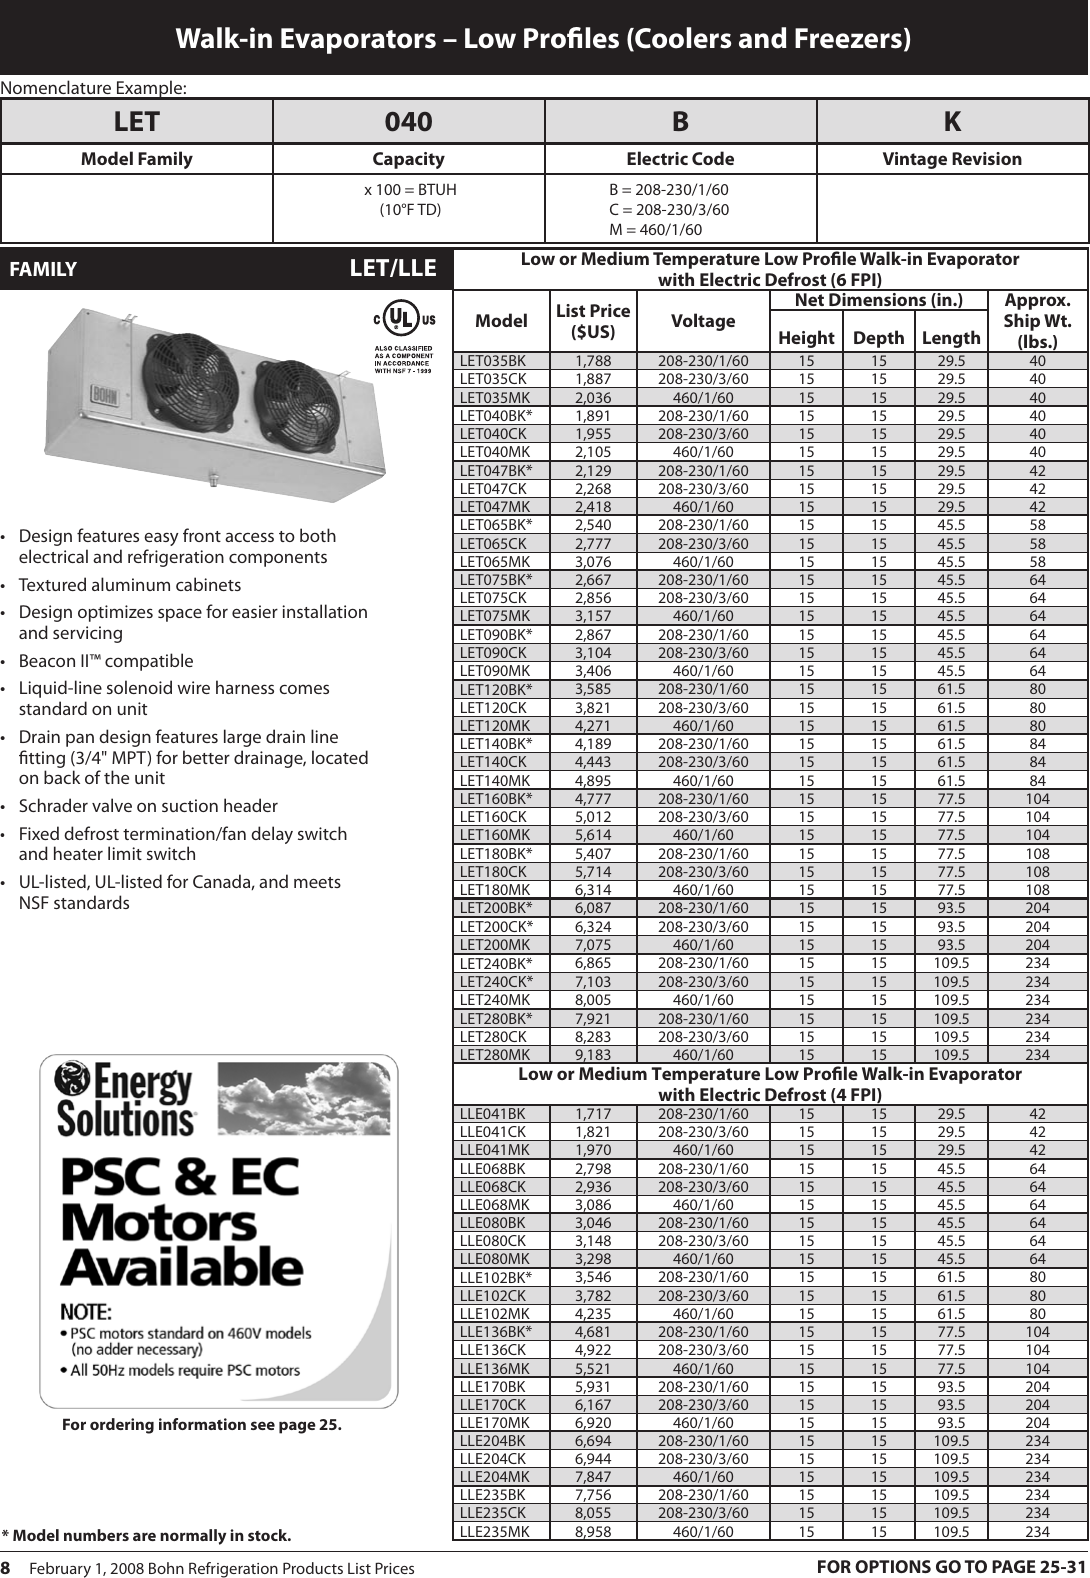 heatcraft refrigeration products bn pl0208 users manual Sterling LT9500 Wiring Diagrams